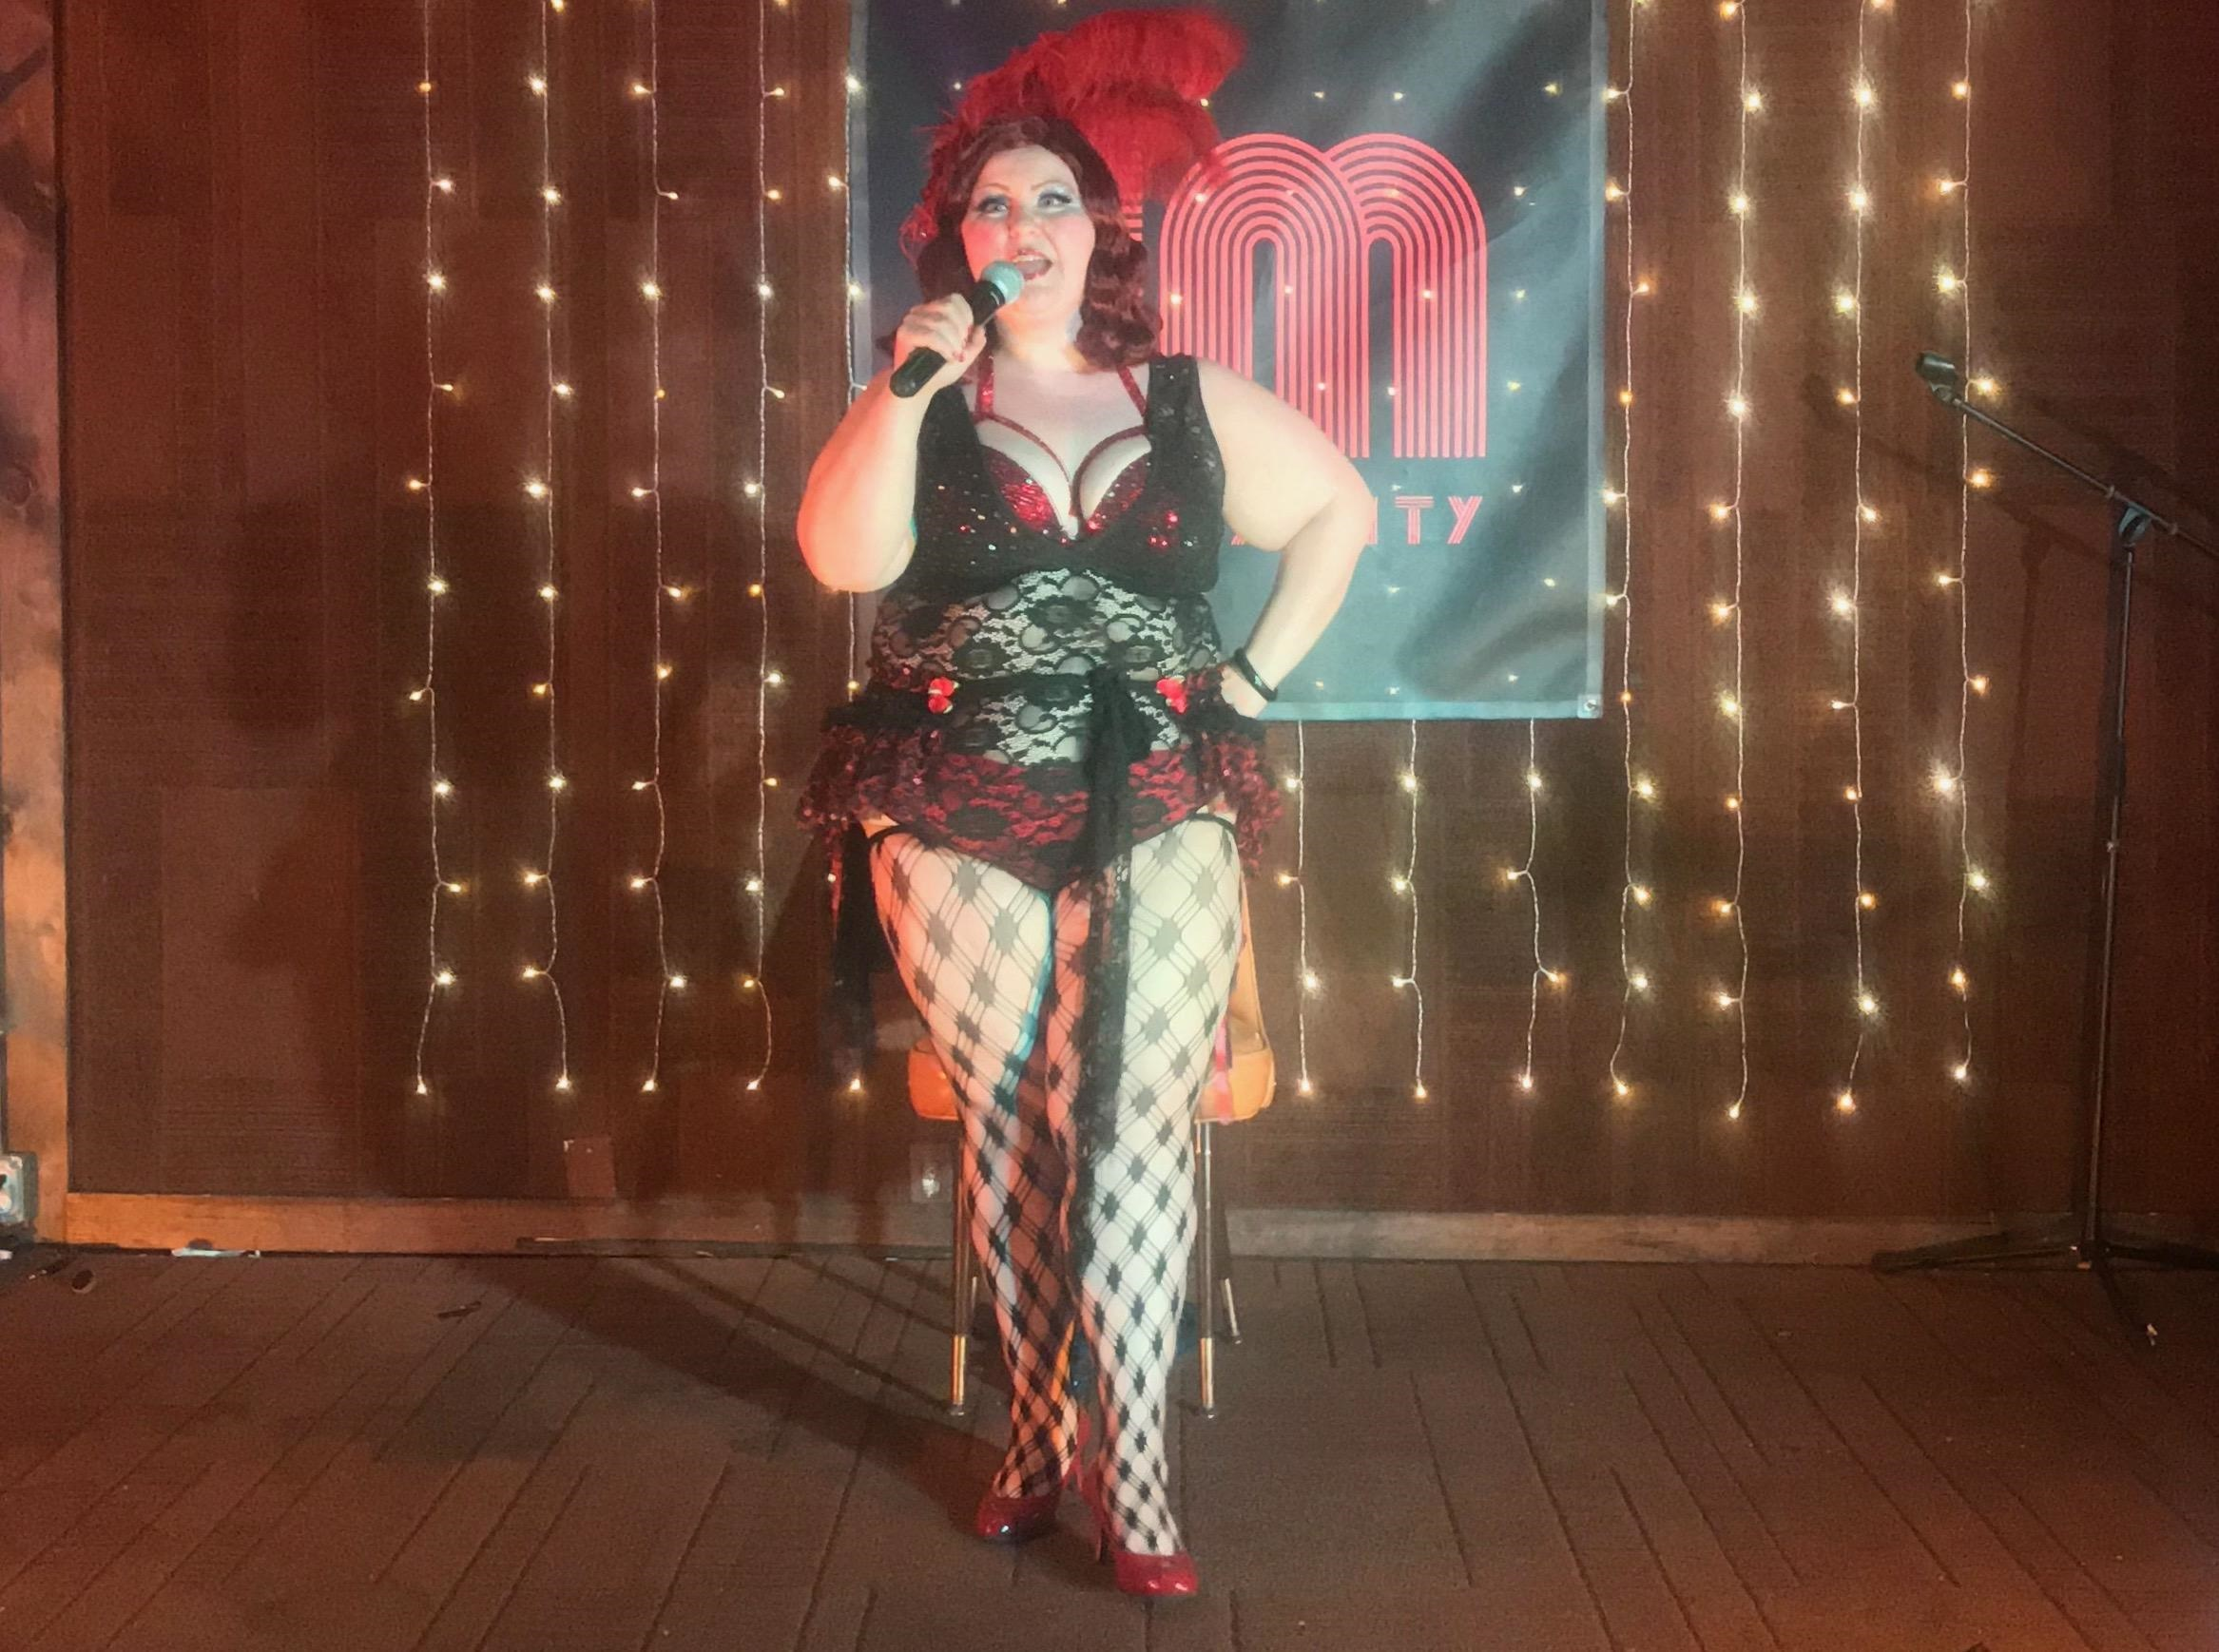 Queen of Jersey City burlesque cloaks serious message in feathers and fishnets